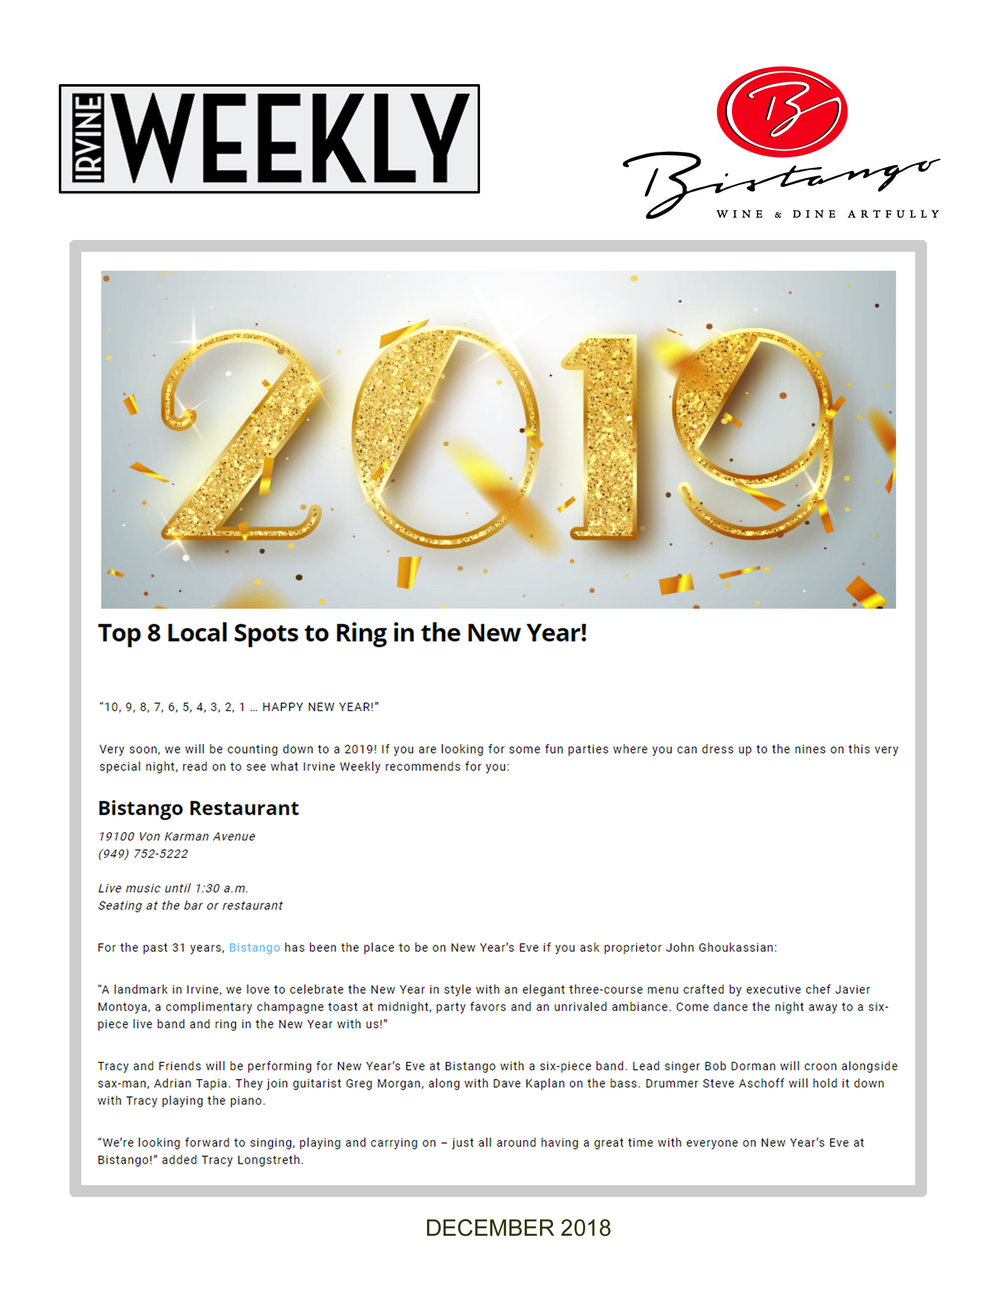 IRVINEWEEKLY_DEC2018.jpg